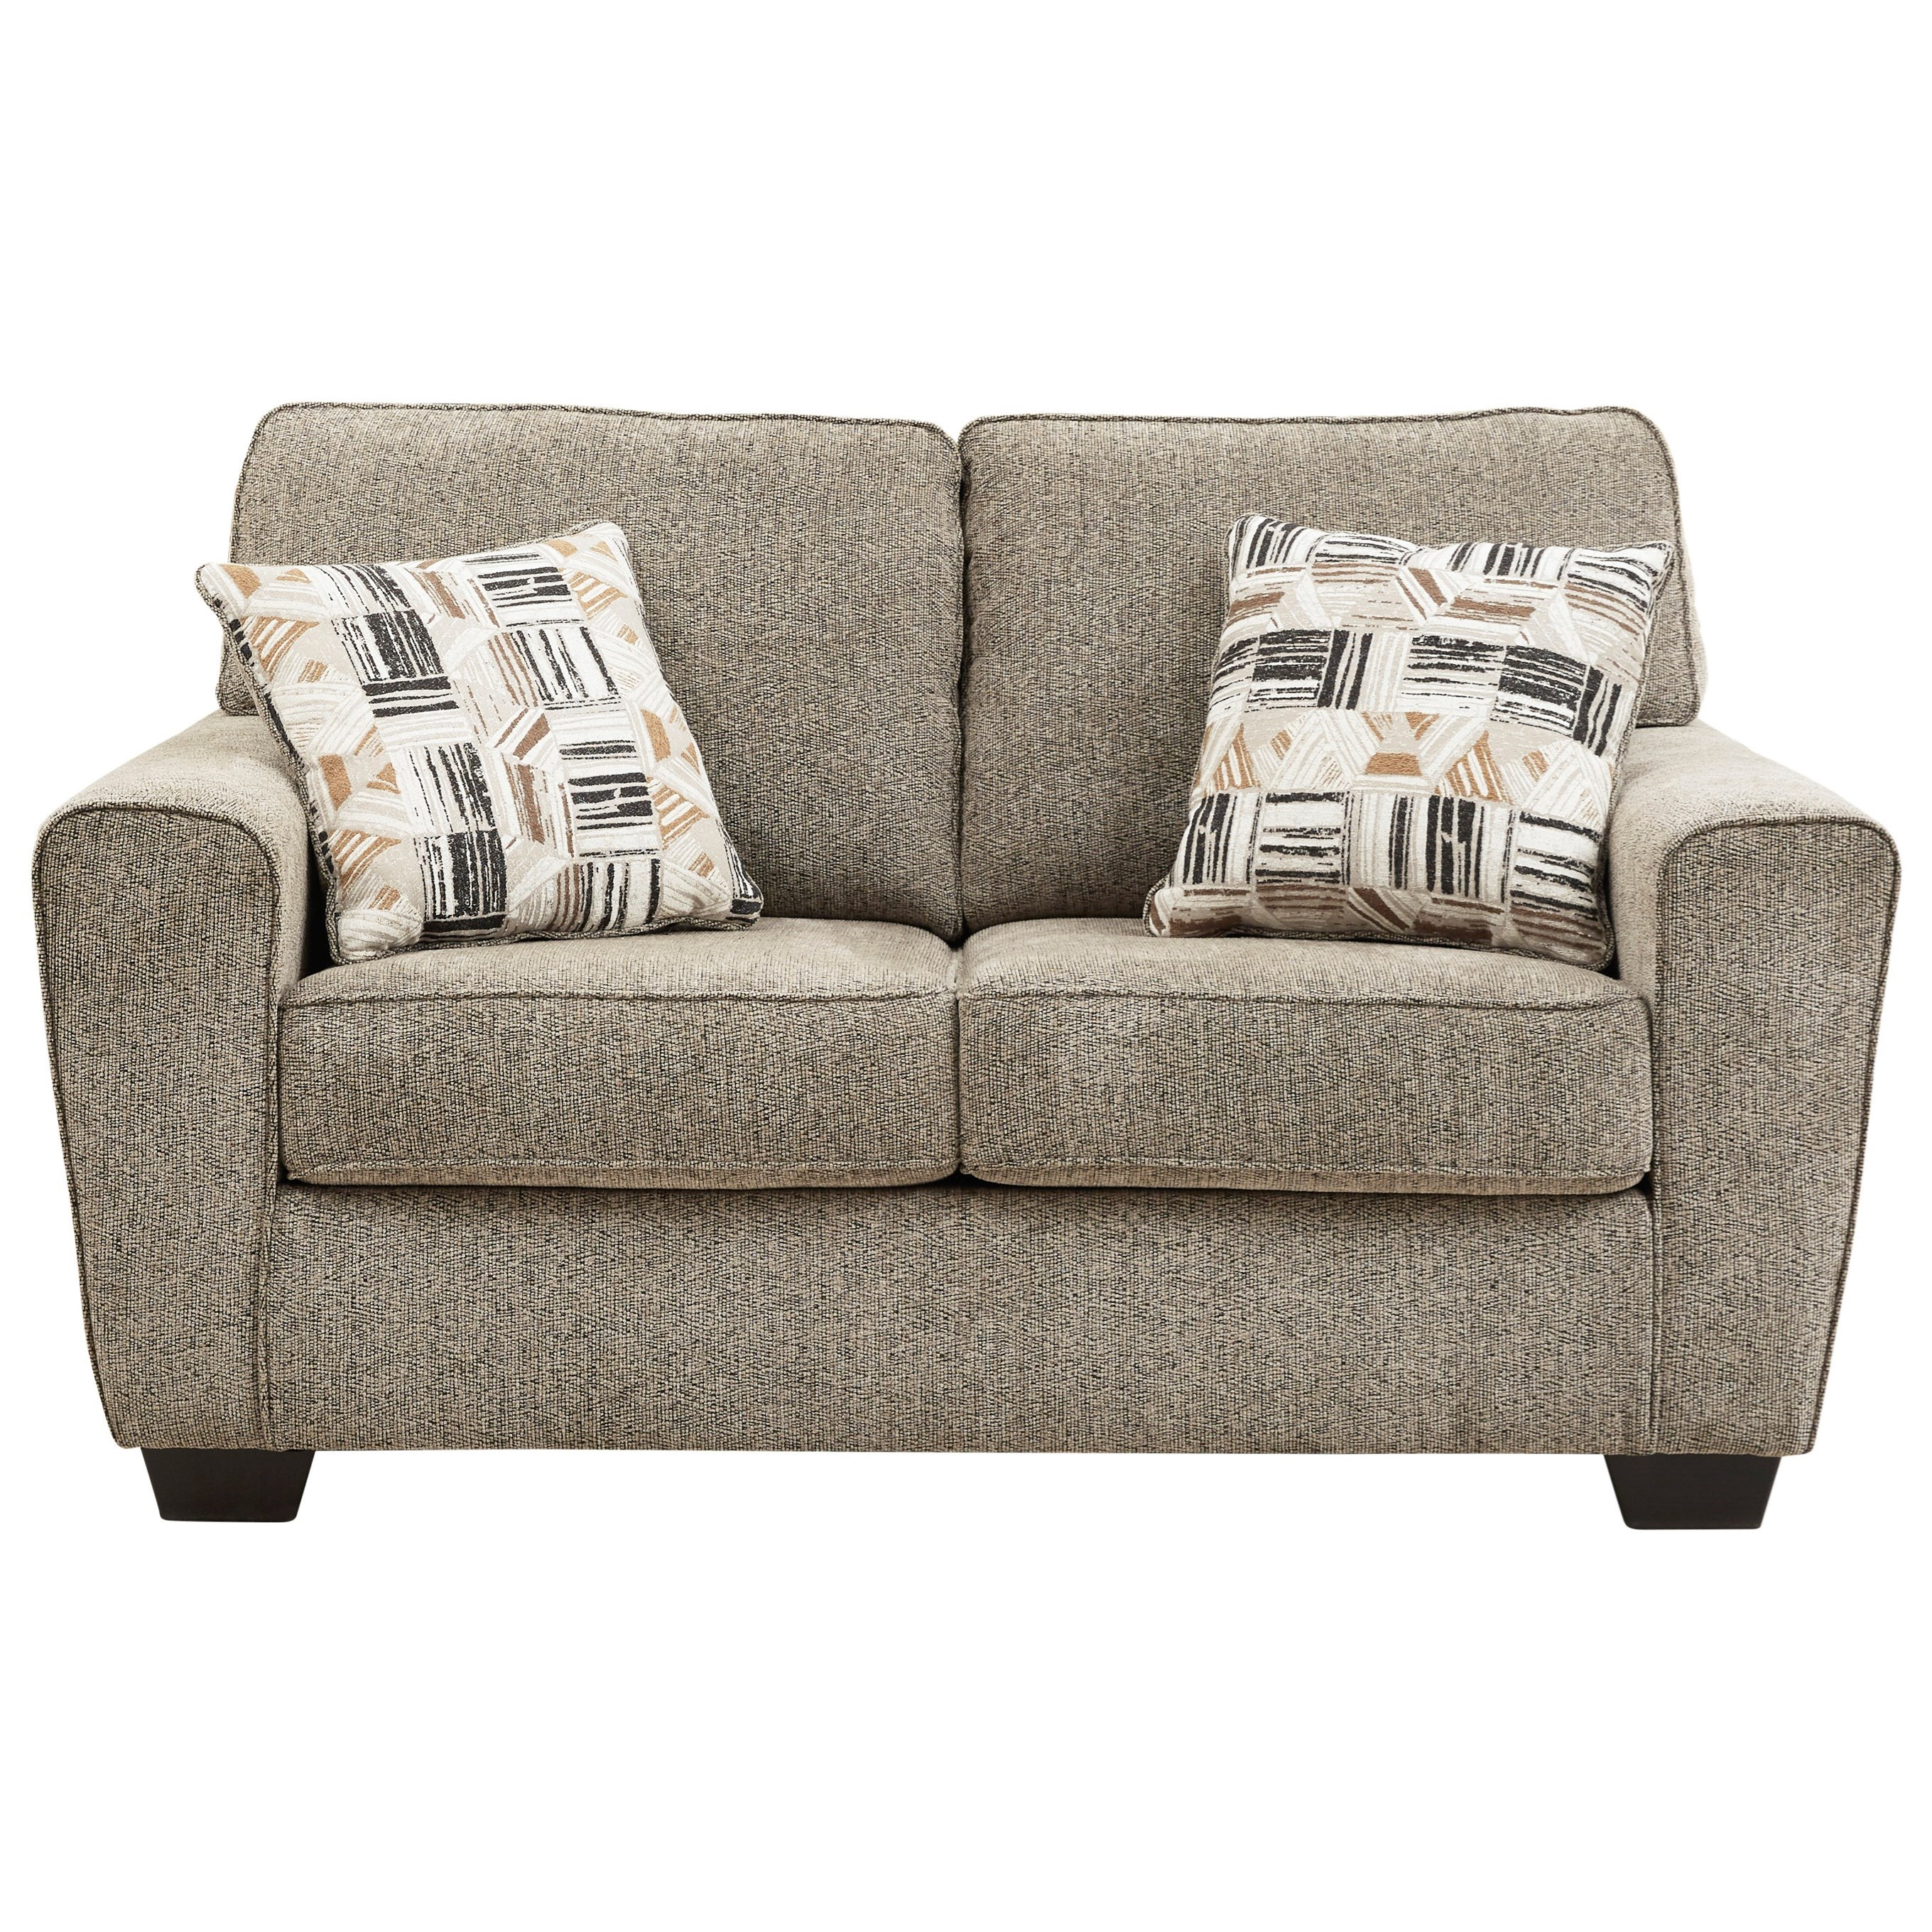 McCluer Loveseat by Benchcraft at Northeast Factory Direct